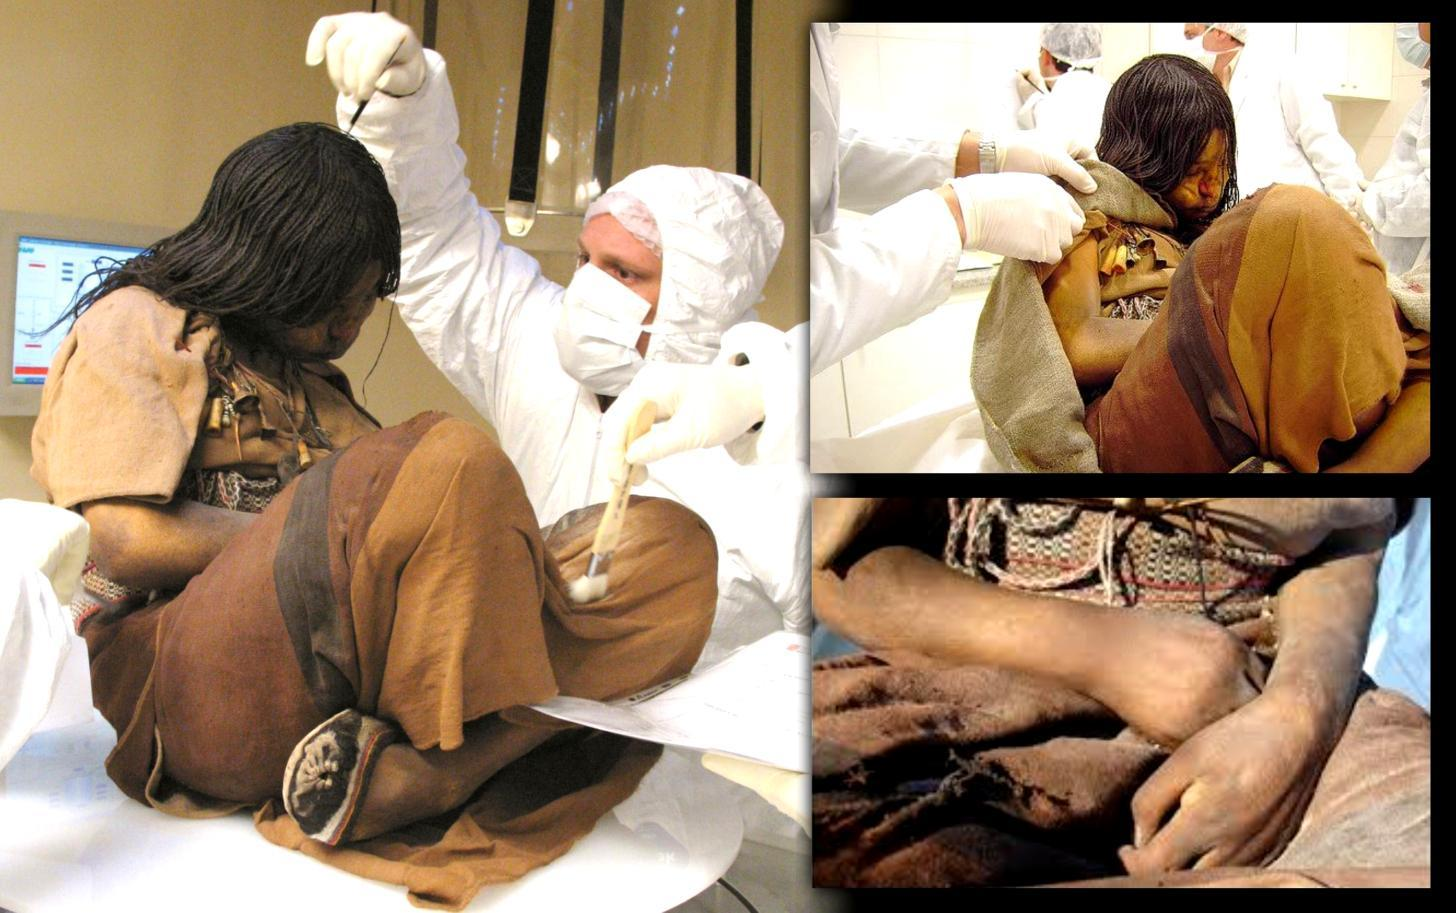 21 incredibly well-preserved human bodies that survived the ages astonishingly 5